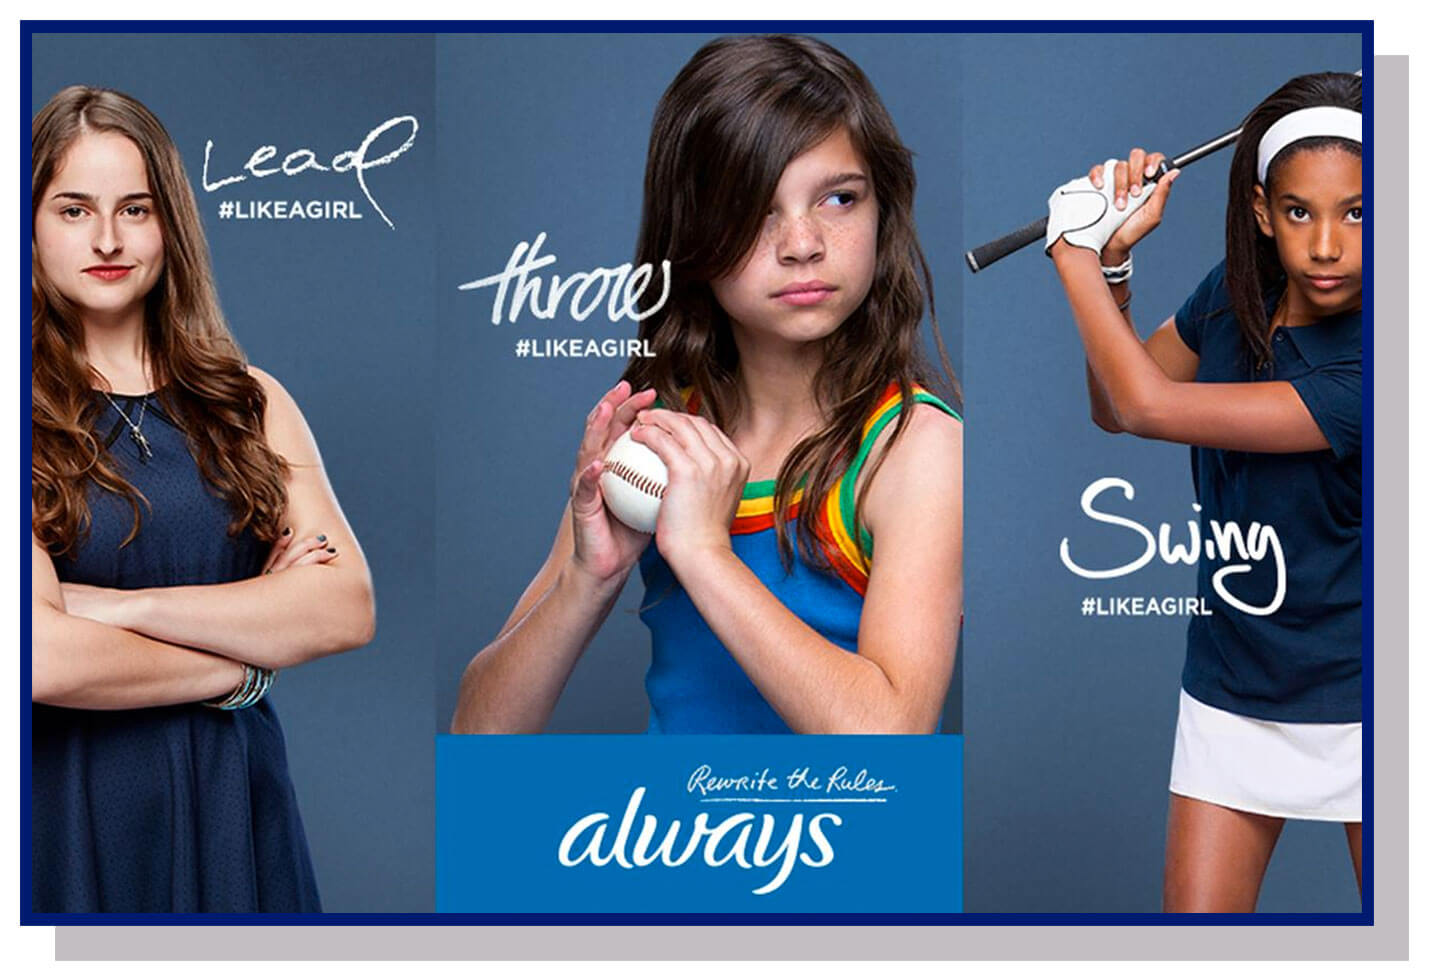 always like a girl campaign for emotional branding